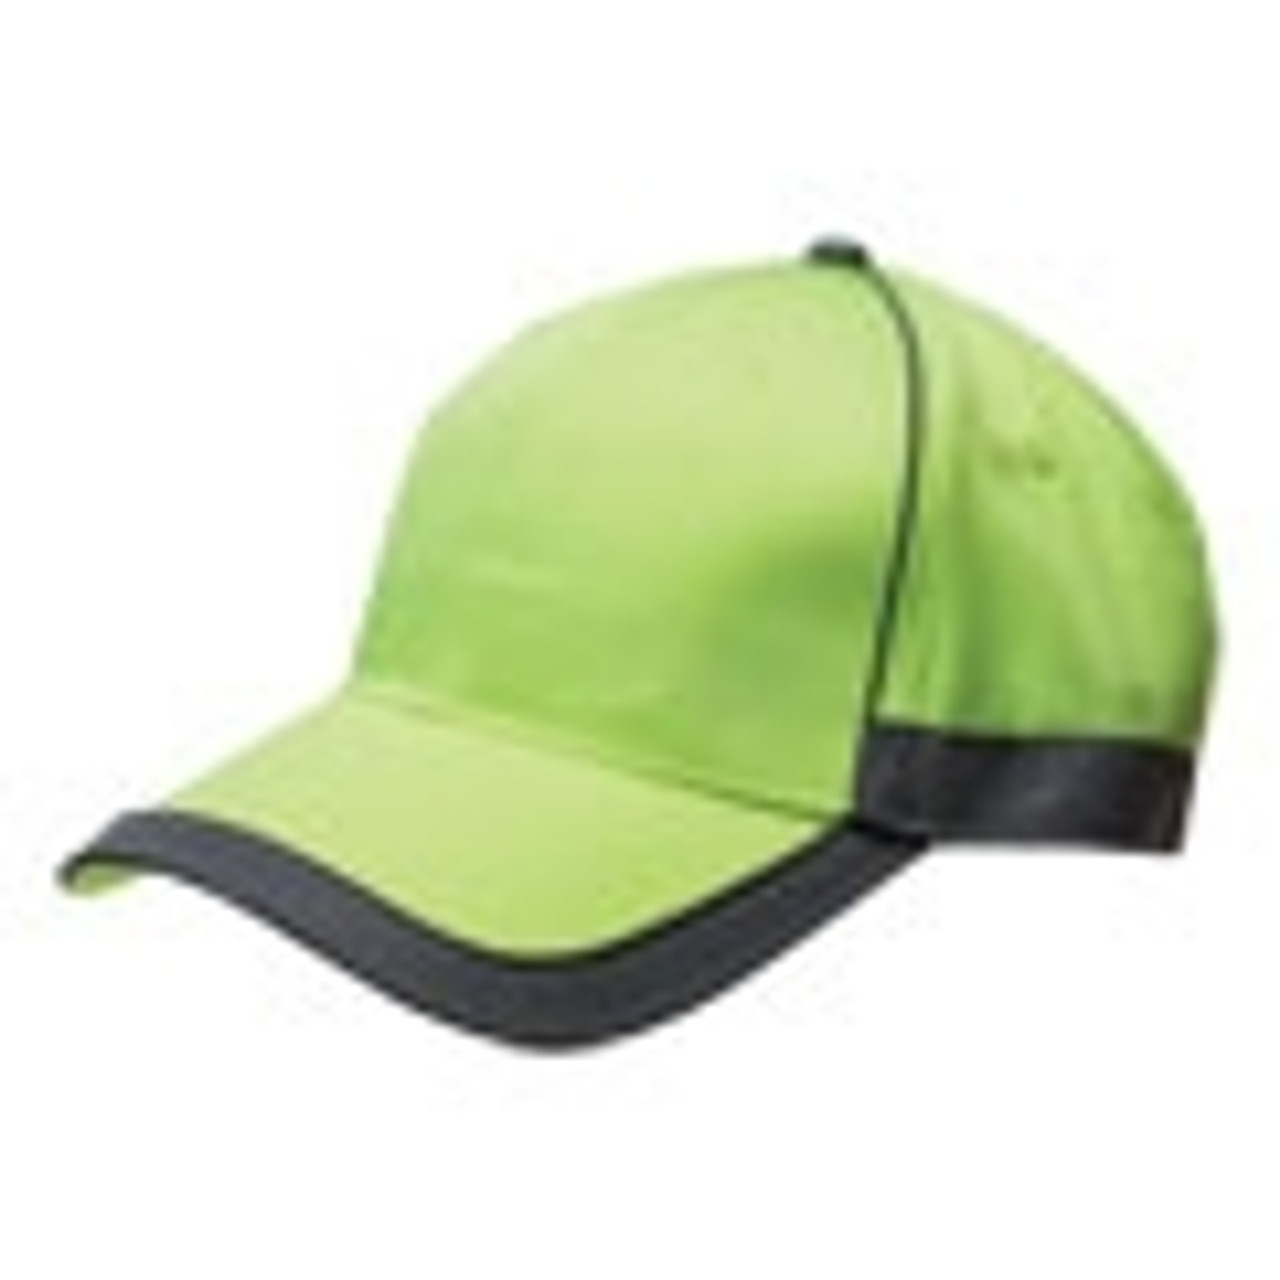 USA Made Safety Cap - Bayside 3720 *Embroidery Available*